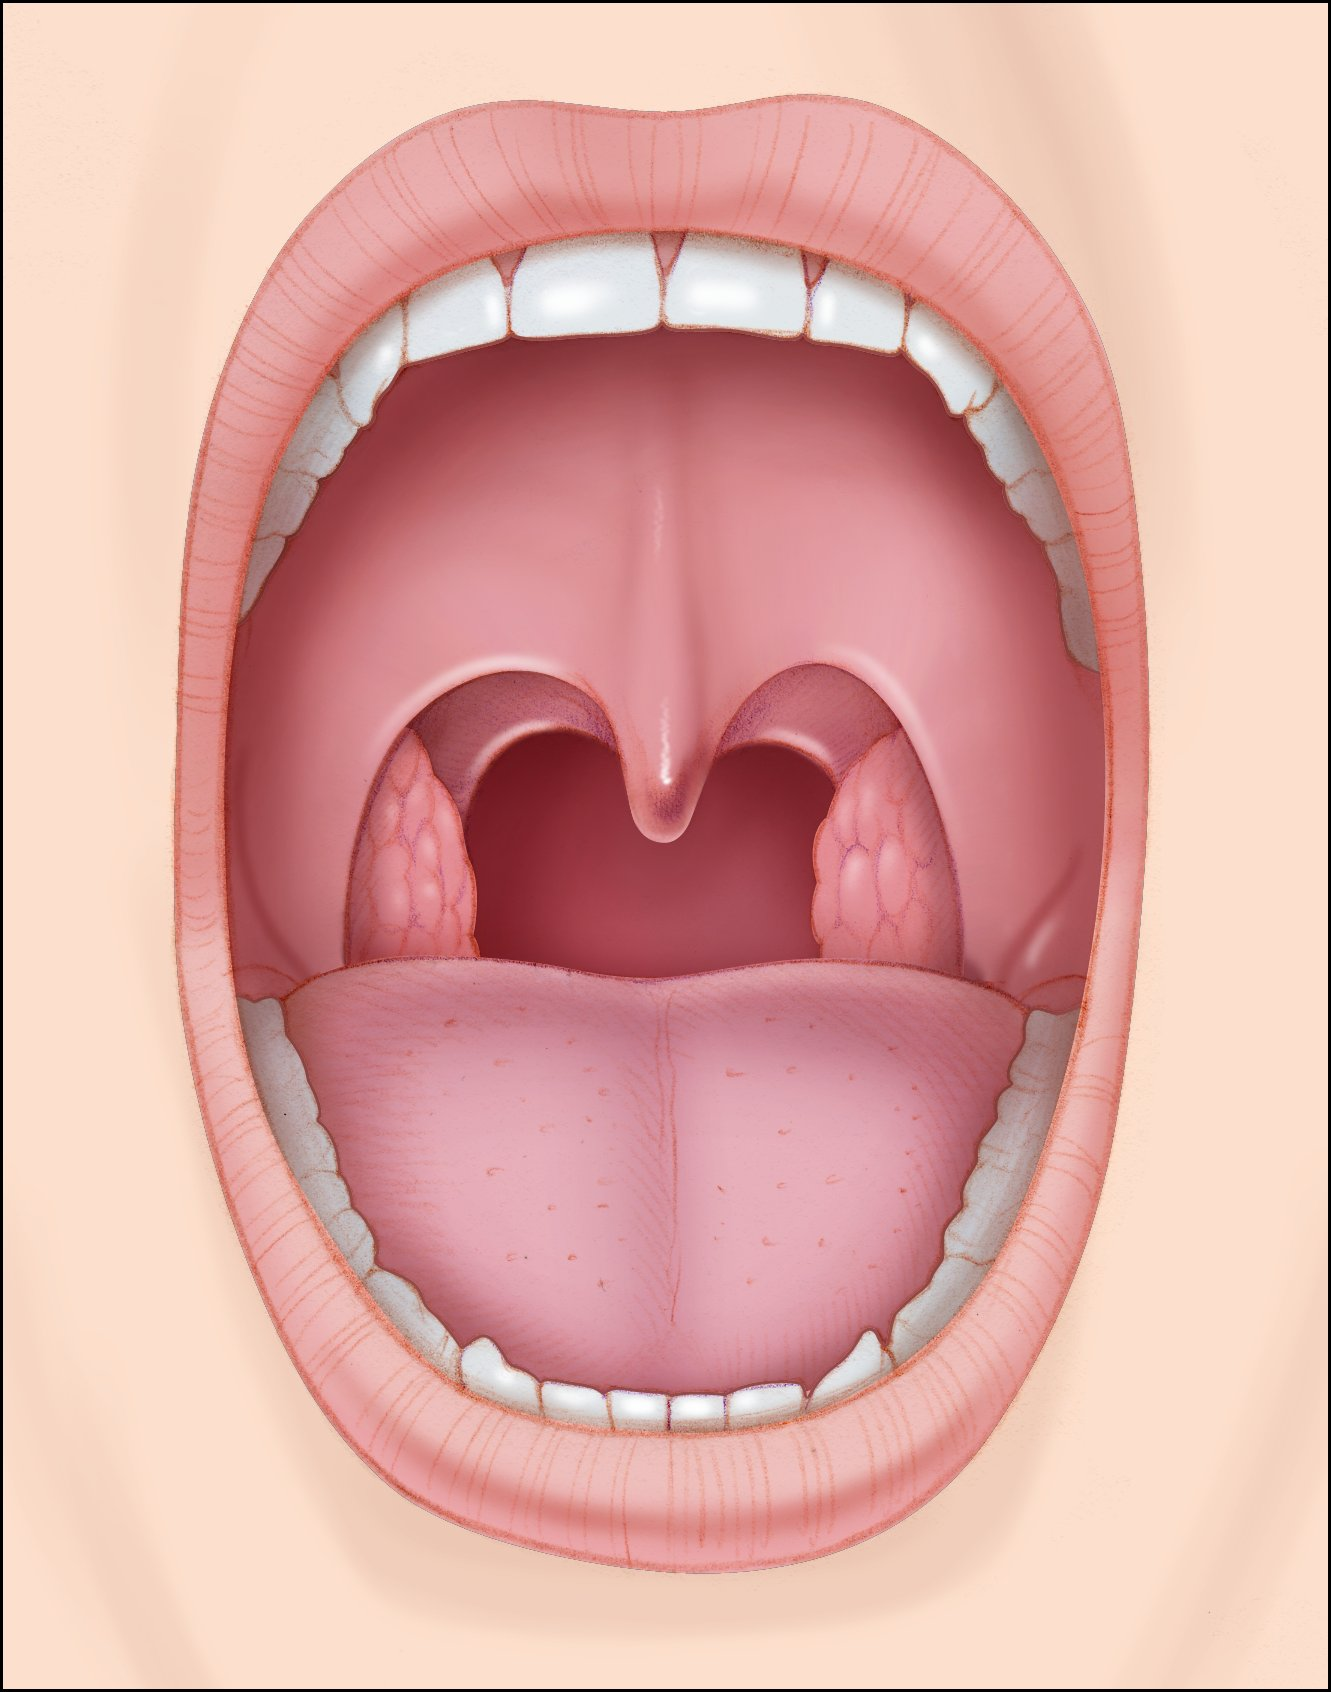 ORAL CAVITY - by Nisha Azhar [Infographic]